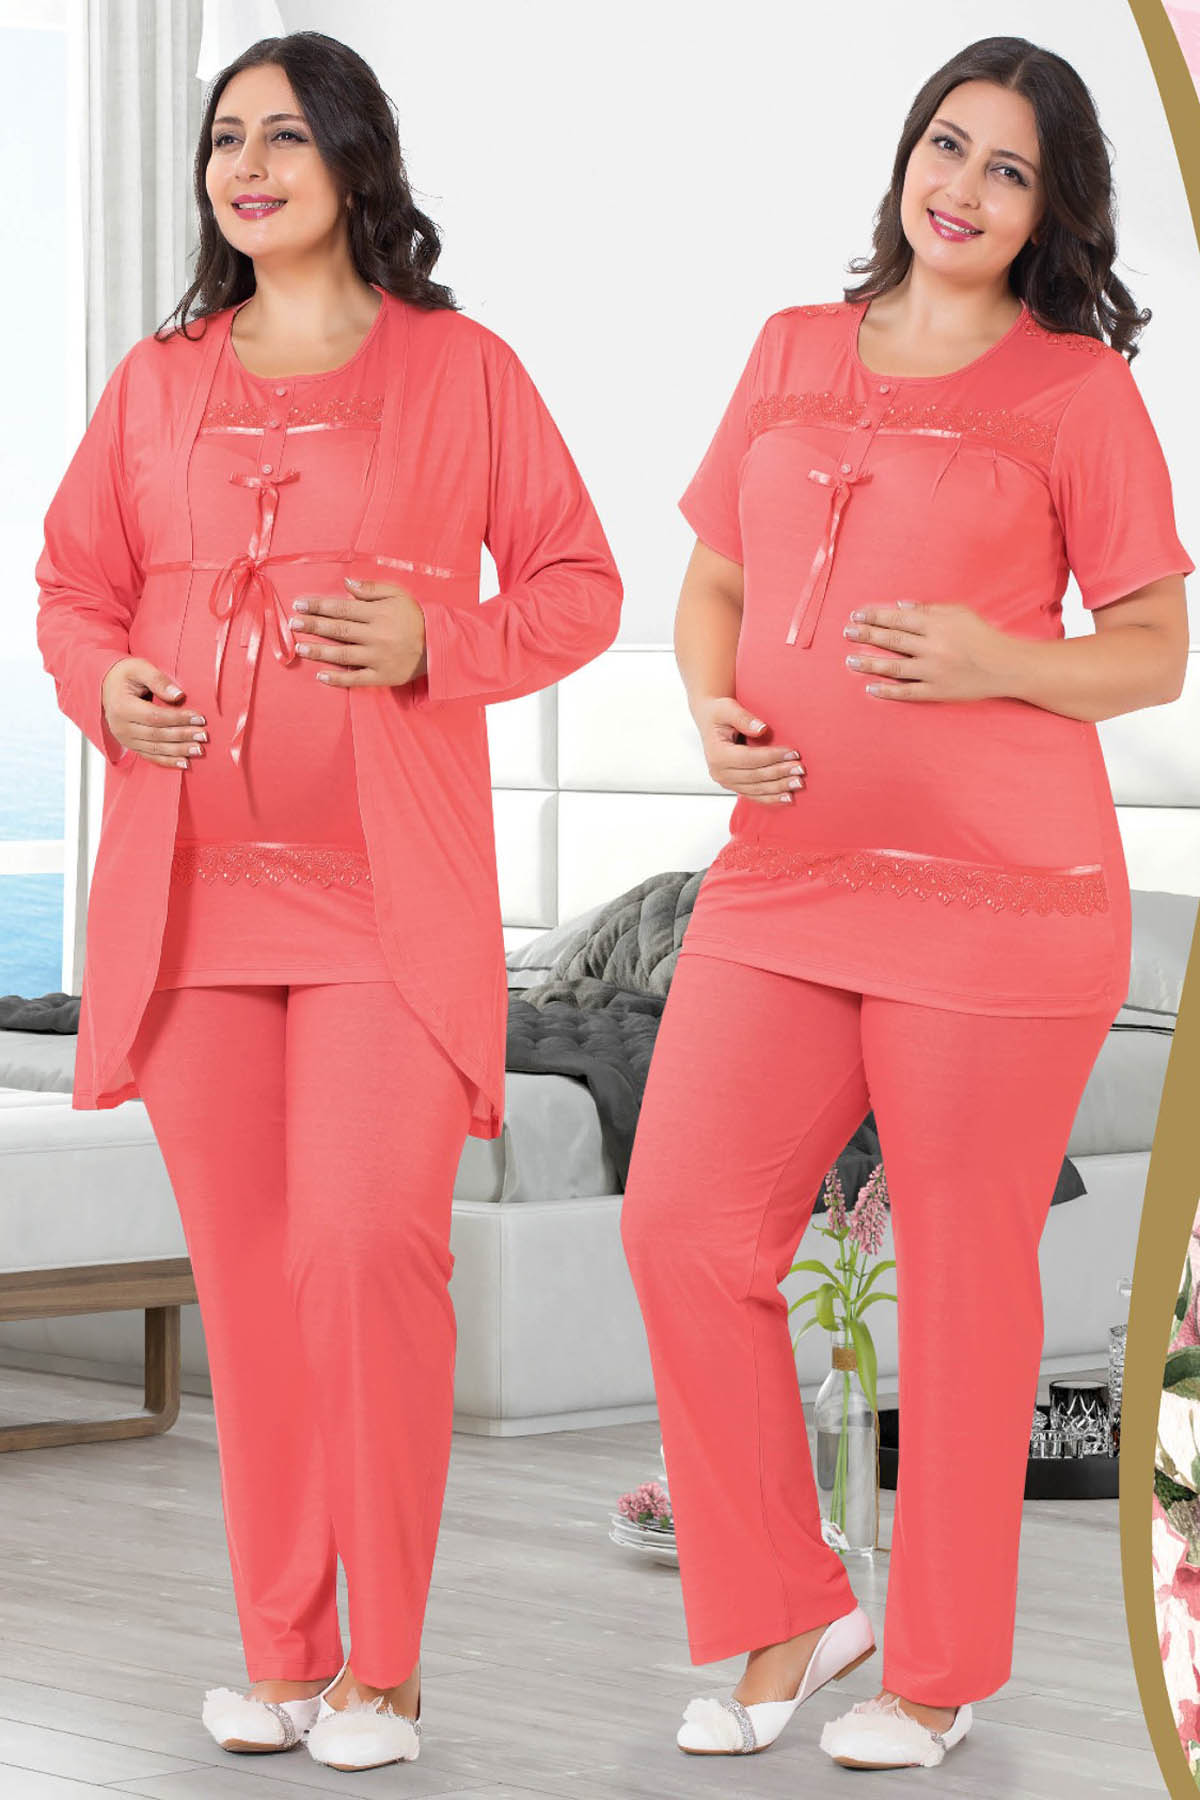 Women Nightgown Dressing Gown Pajamas Set Pregnancy Dress Cotton Soft Lahusa Wear at Home Comfortable Bed 3-Piece Oversize Range enlarge